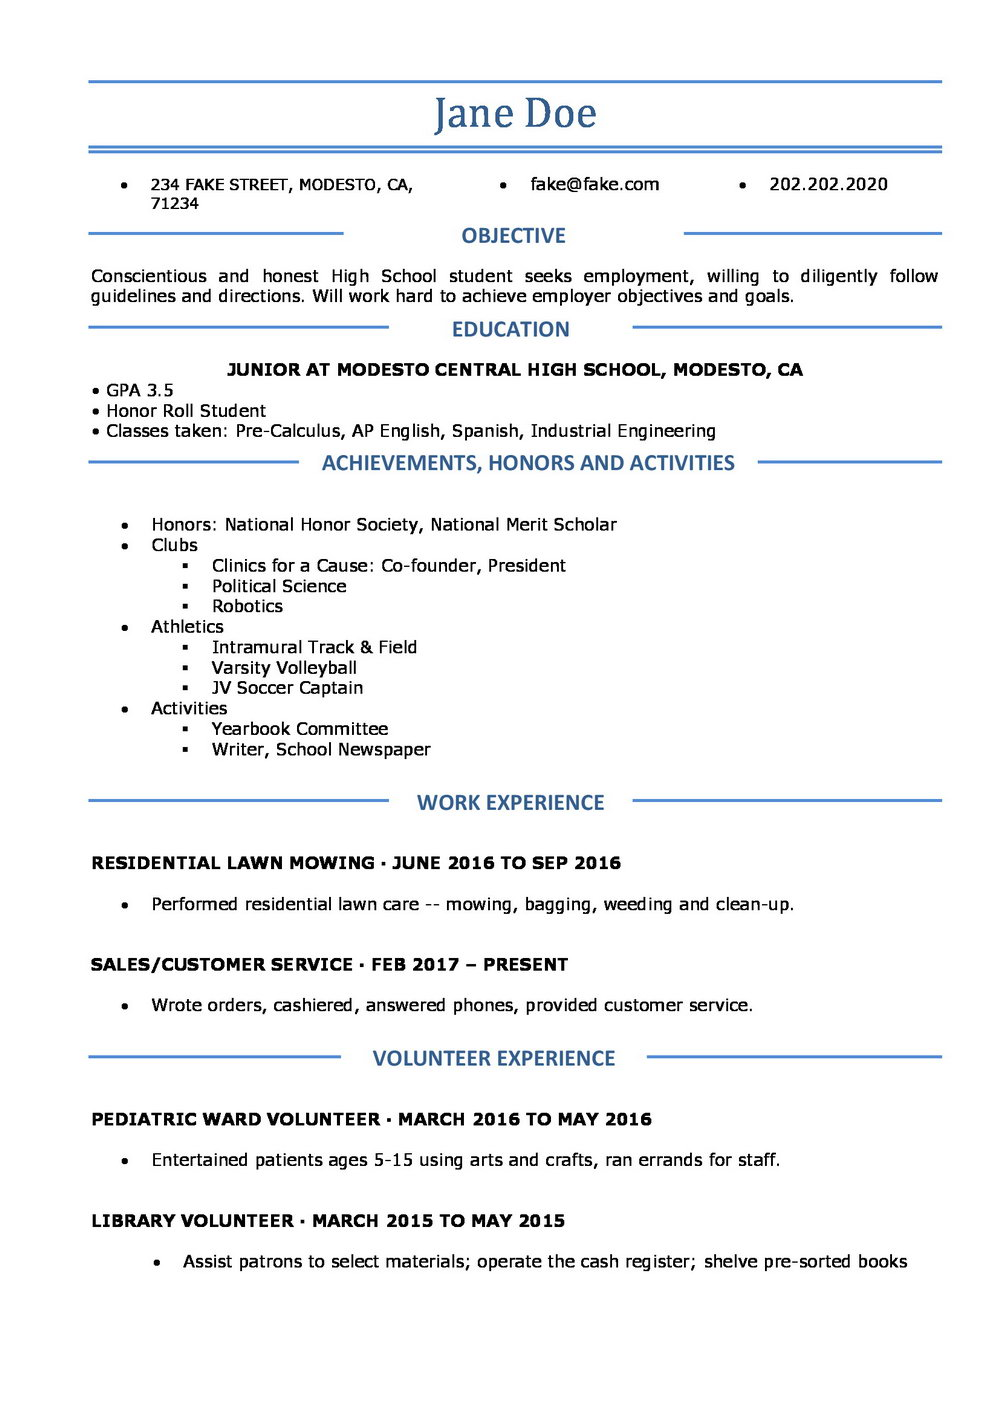 Free High School Resume Templates For Students